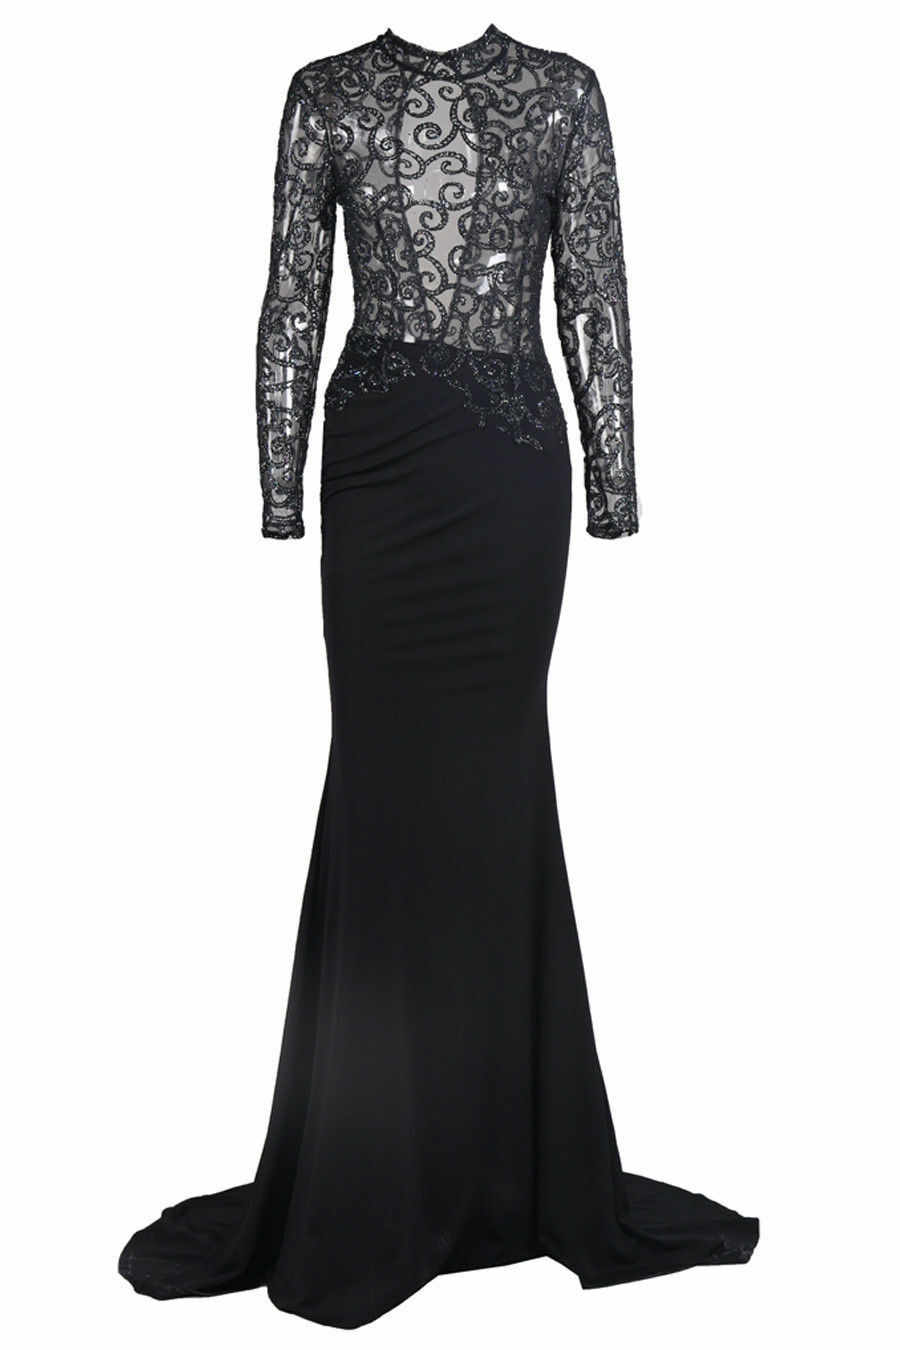 Honey Couture Black Mesh Sequin Formal Dress